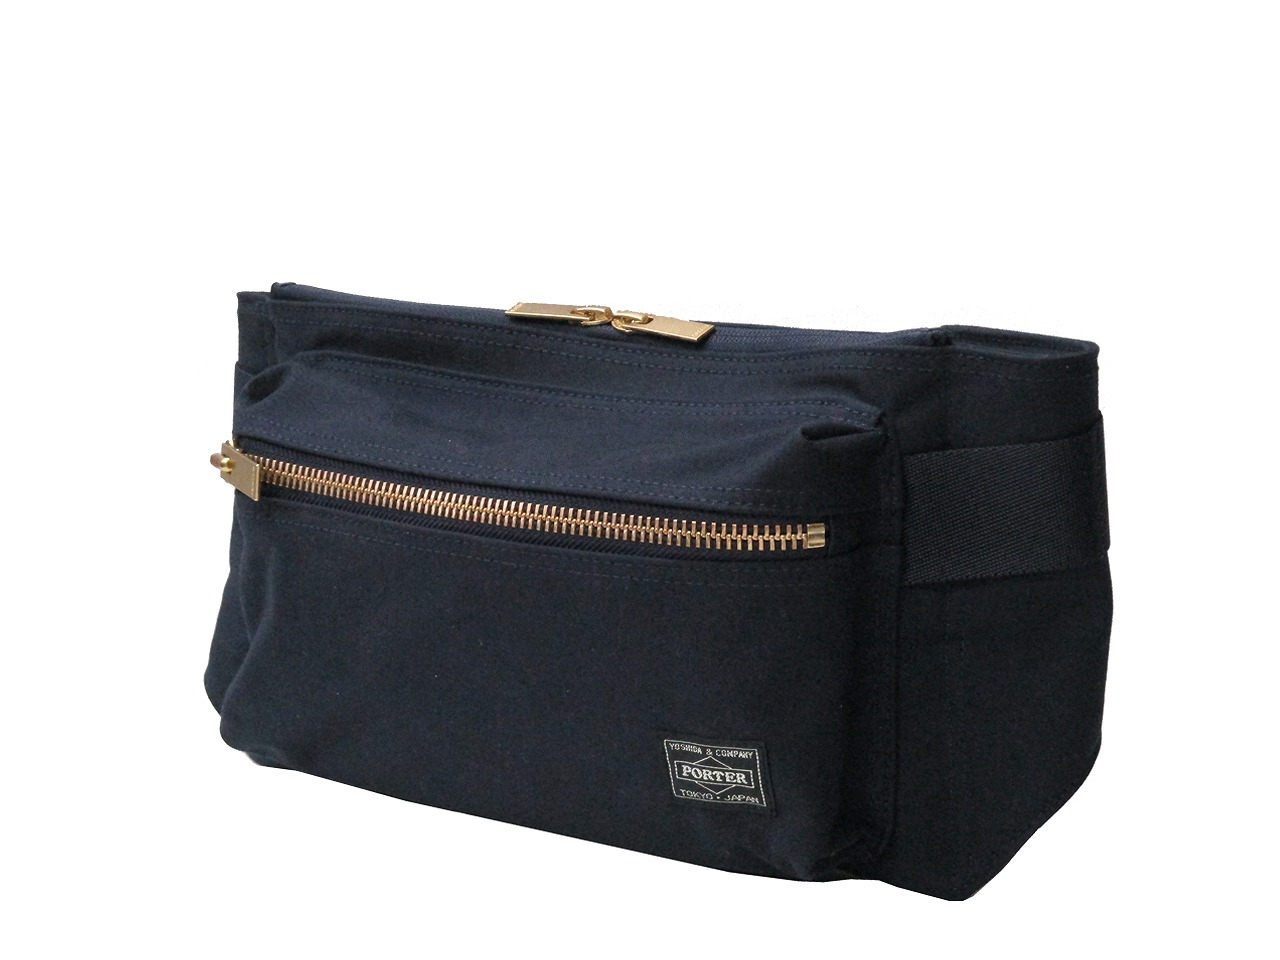 (Only in JAPAN.) 吉田カバン PORTER SPEC WAIST BAG スペック ウエストバッグ 580-19605 (This product is not for overseas customer.)